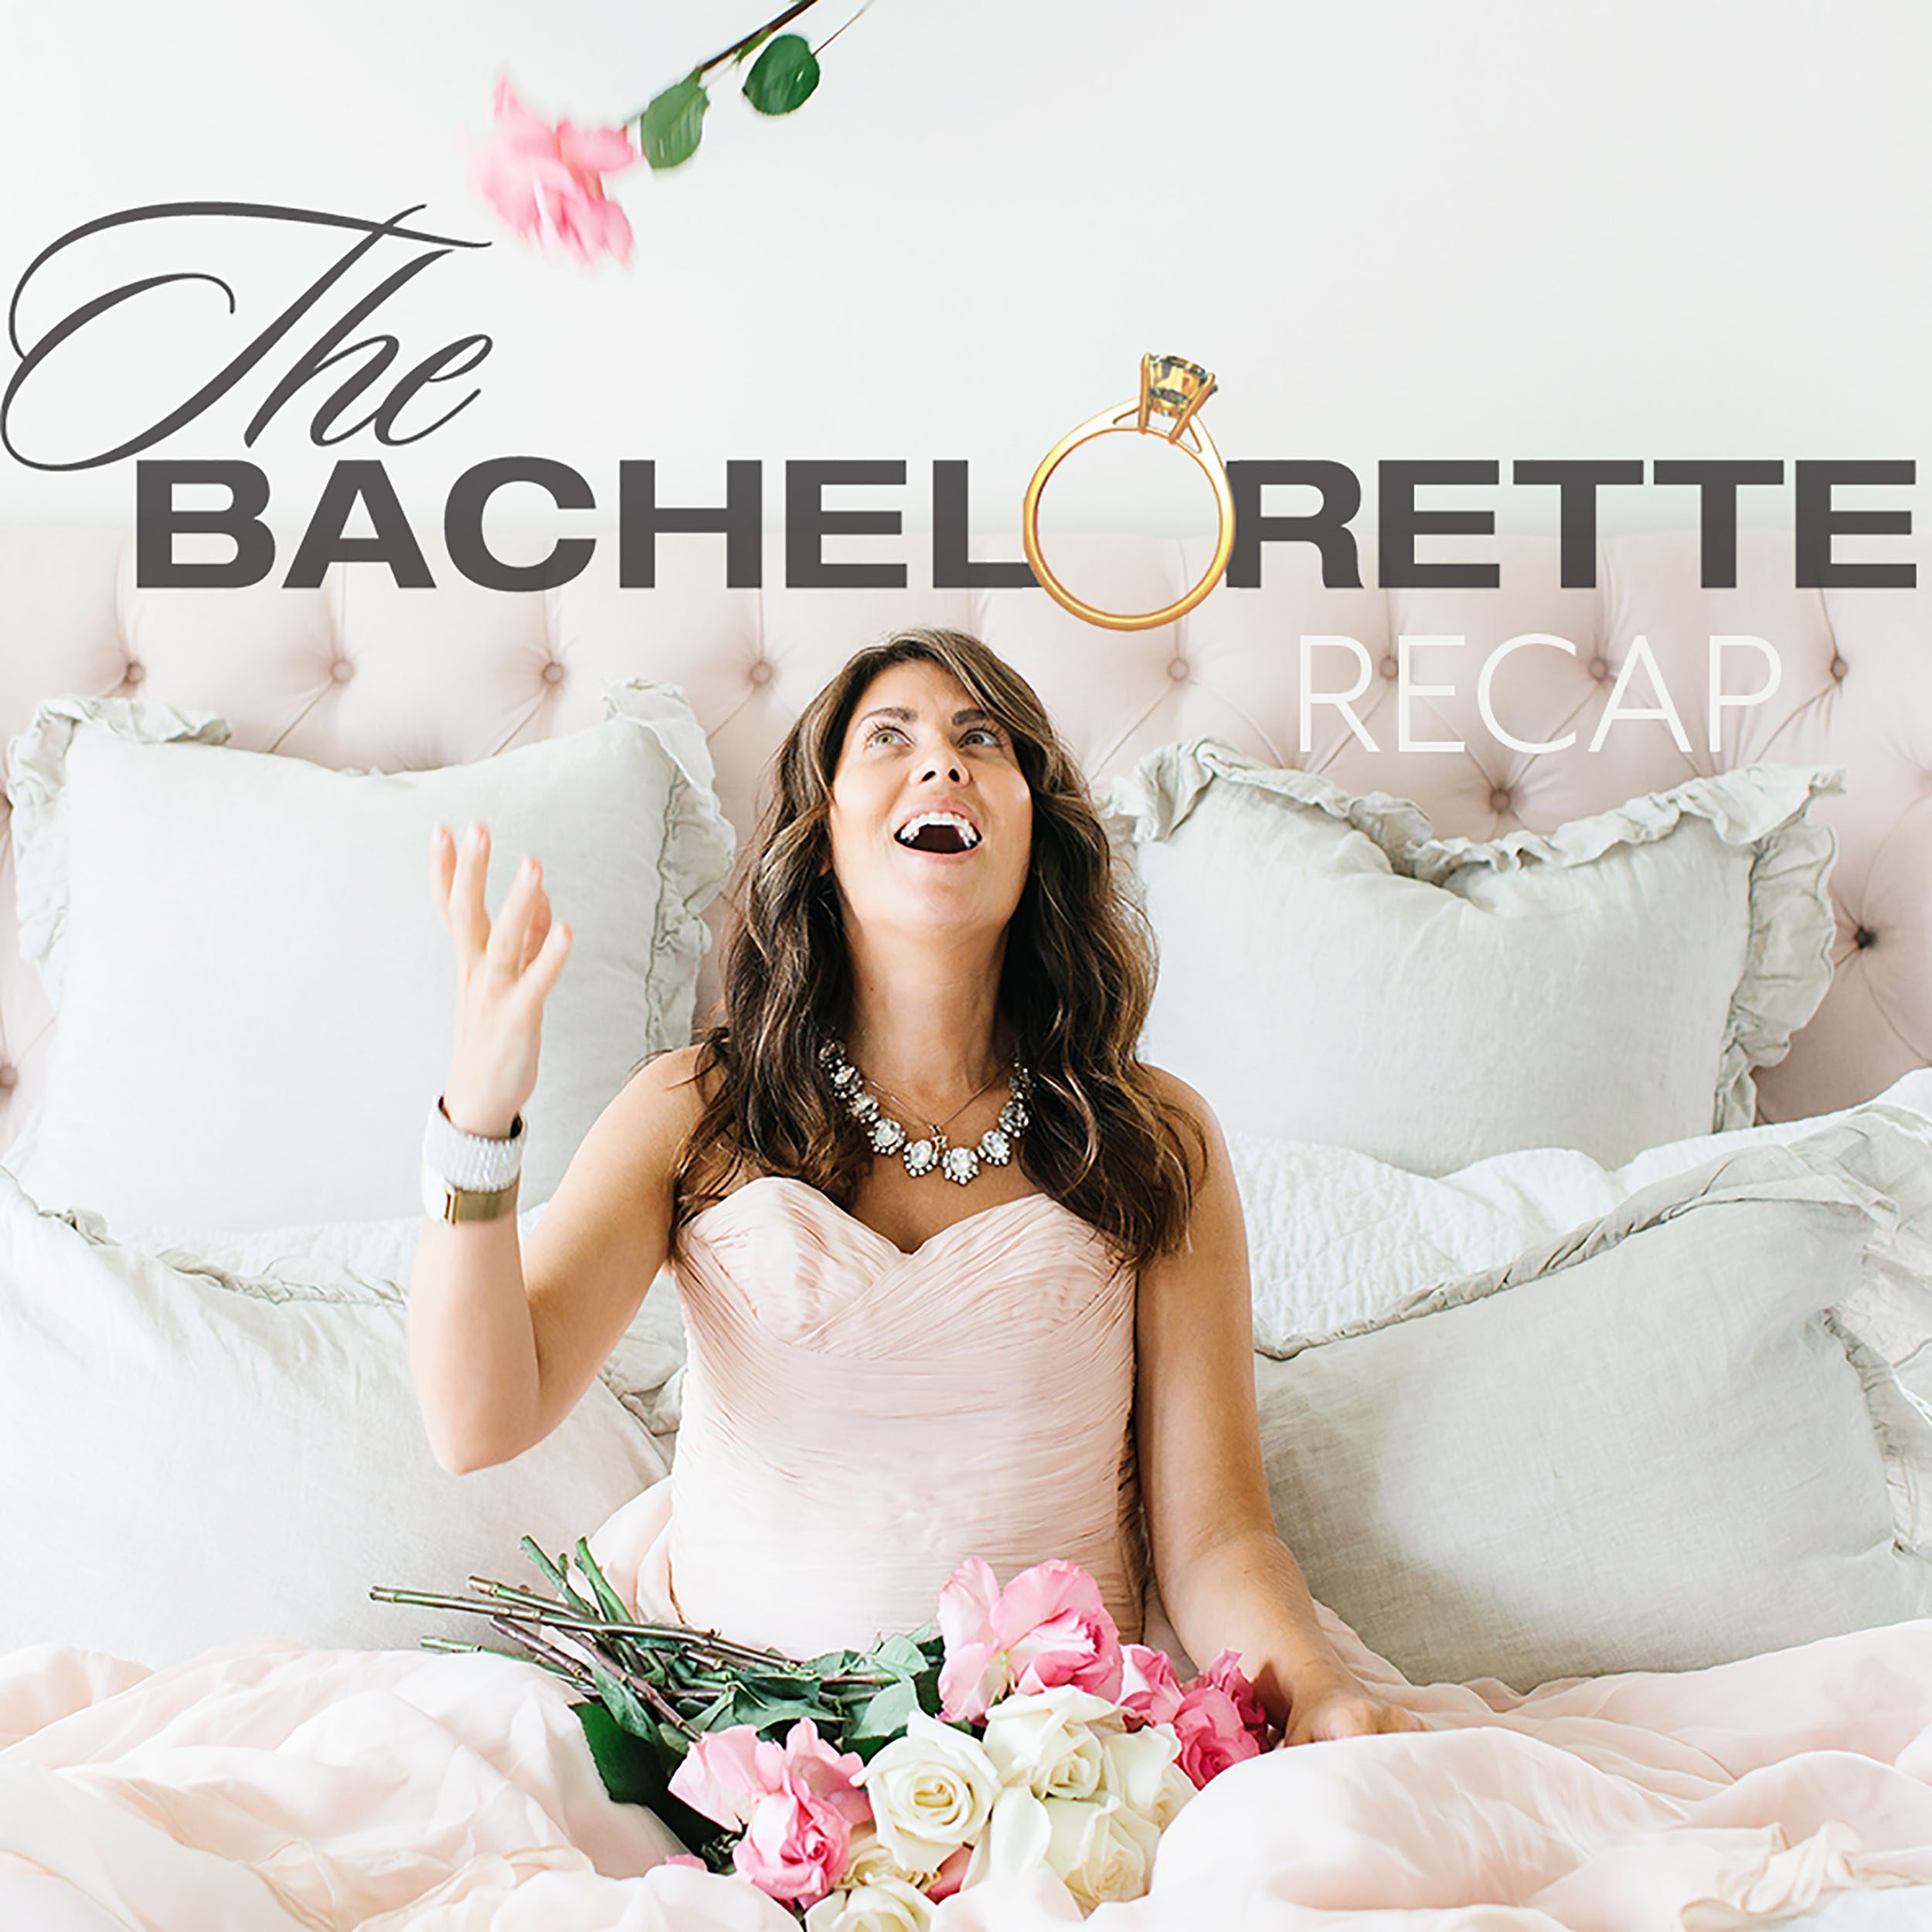 BACHELORETTE-FEATURE-IMAGE-1.jpg